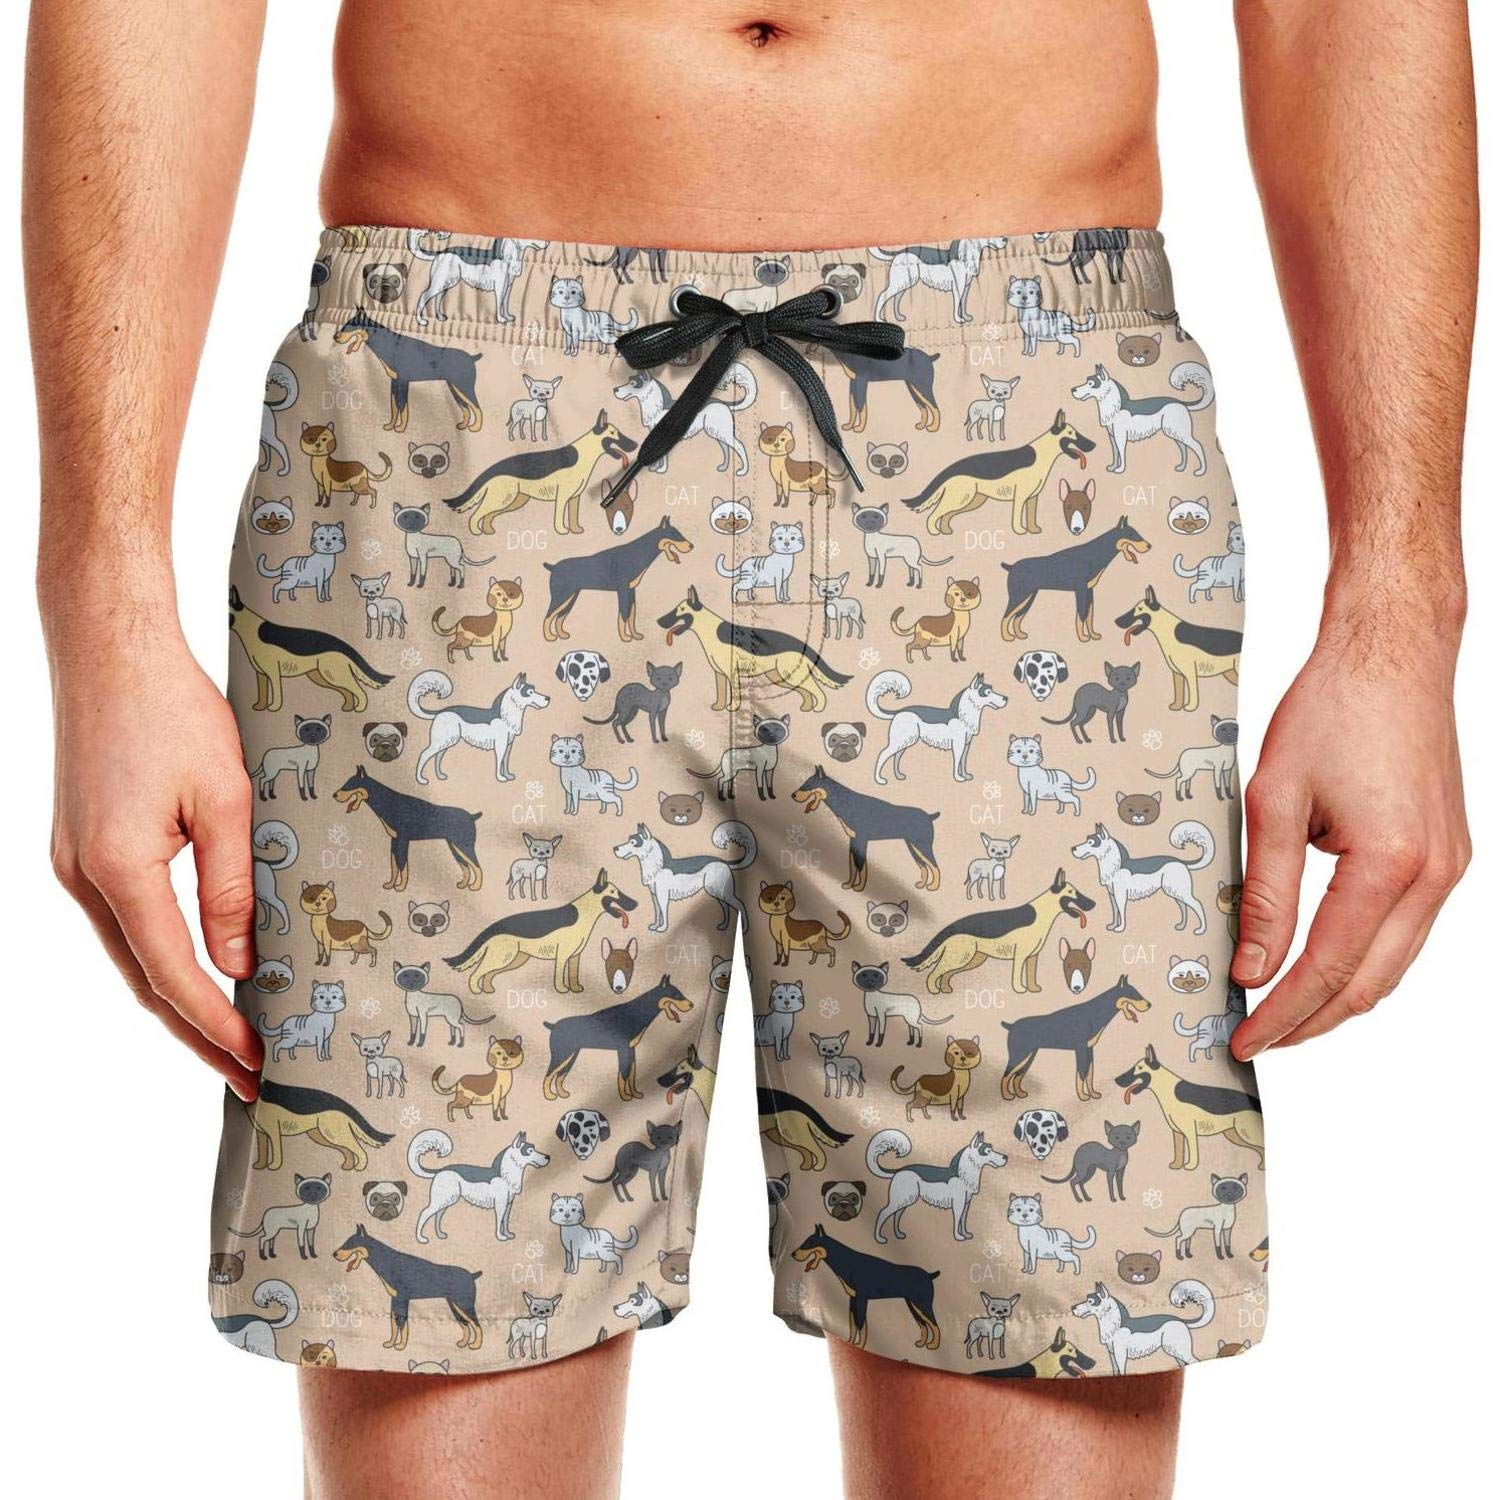 CCBING Cute Cats and Dogs Design Mens Novelty Swim Trunks Waterproof Surfing